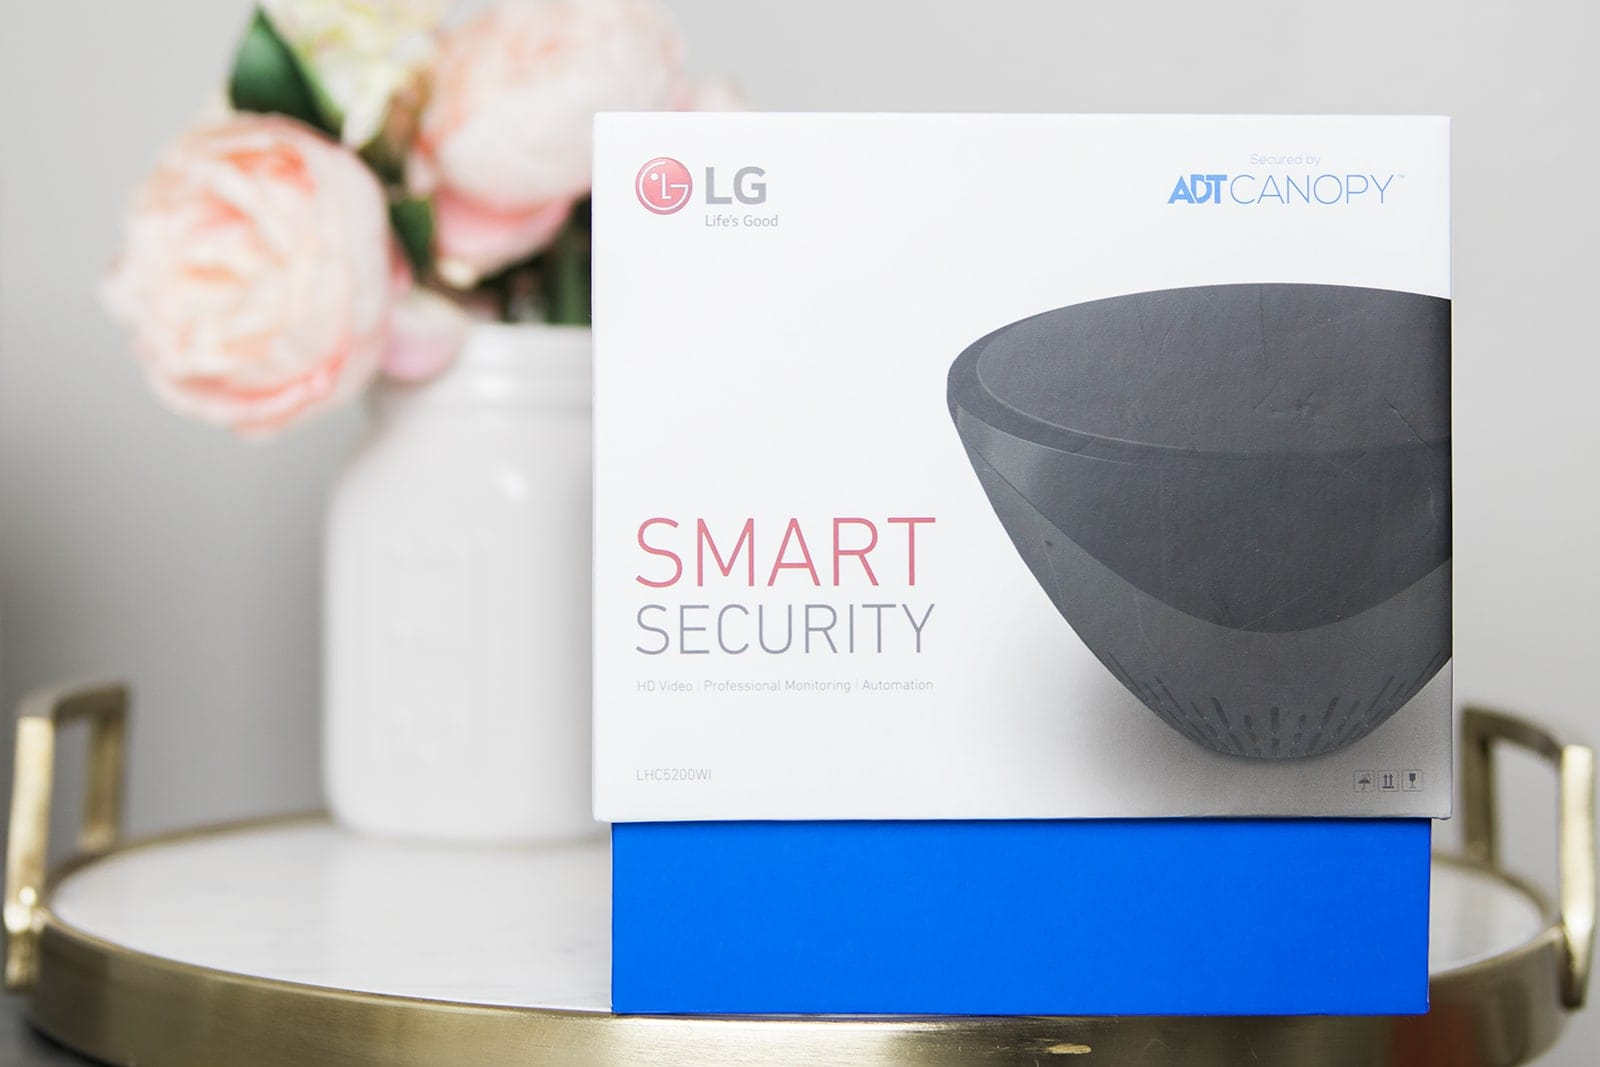 LG Smart Security really gives peace of mind when you're away from home